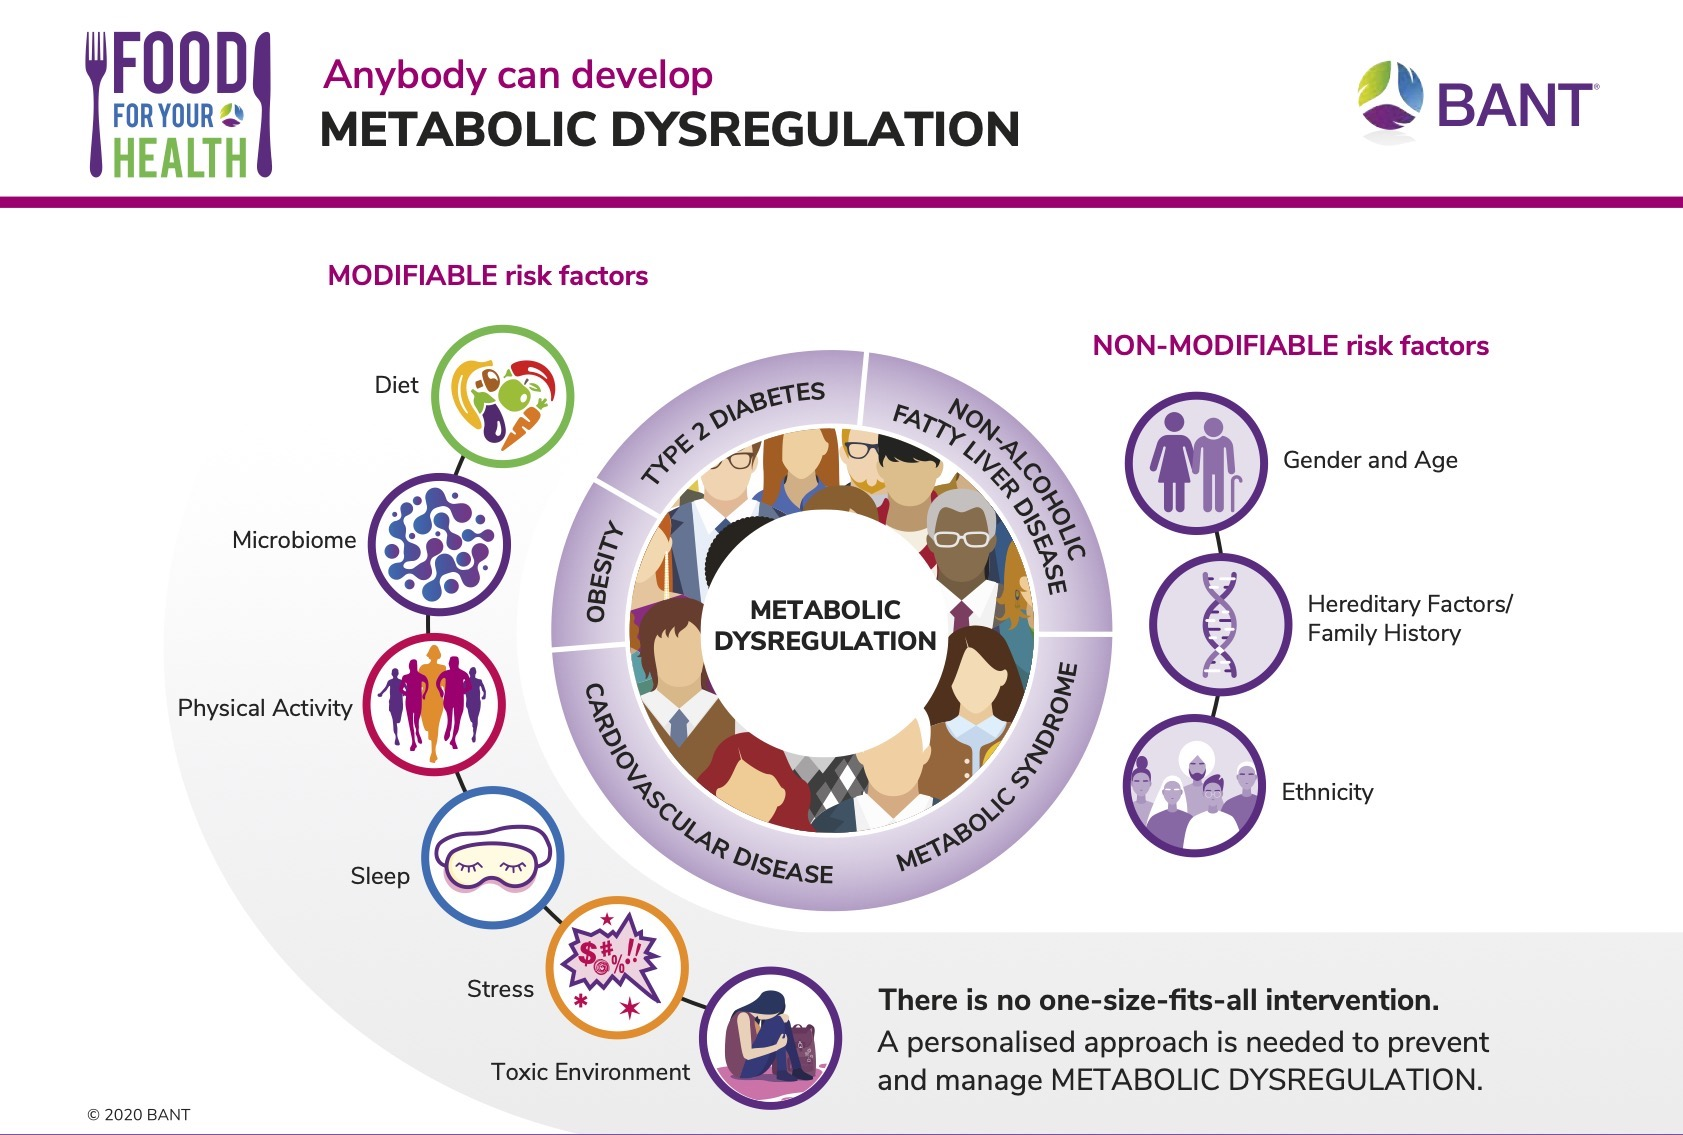 Anybody can develop Metabolic Dysregulation